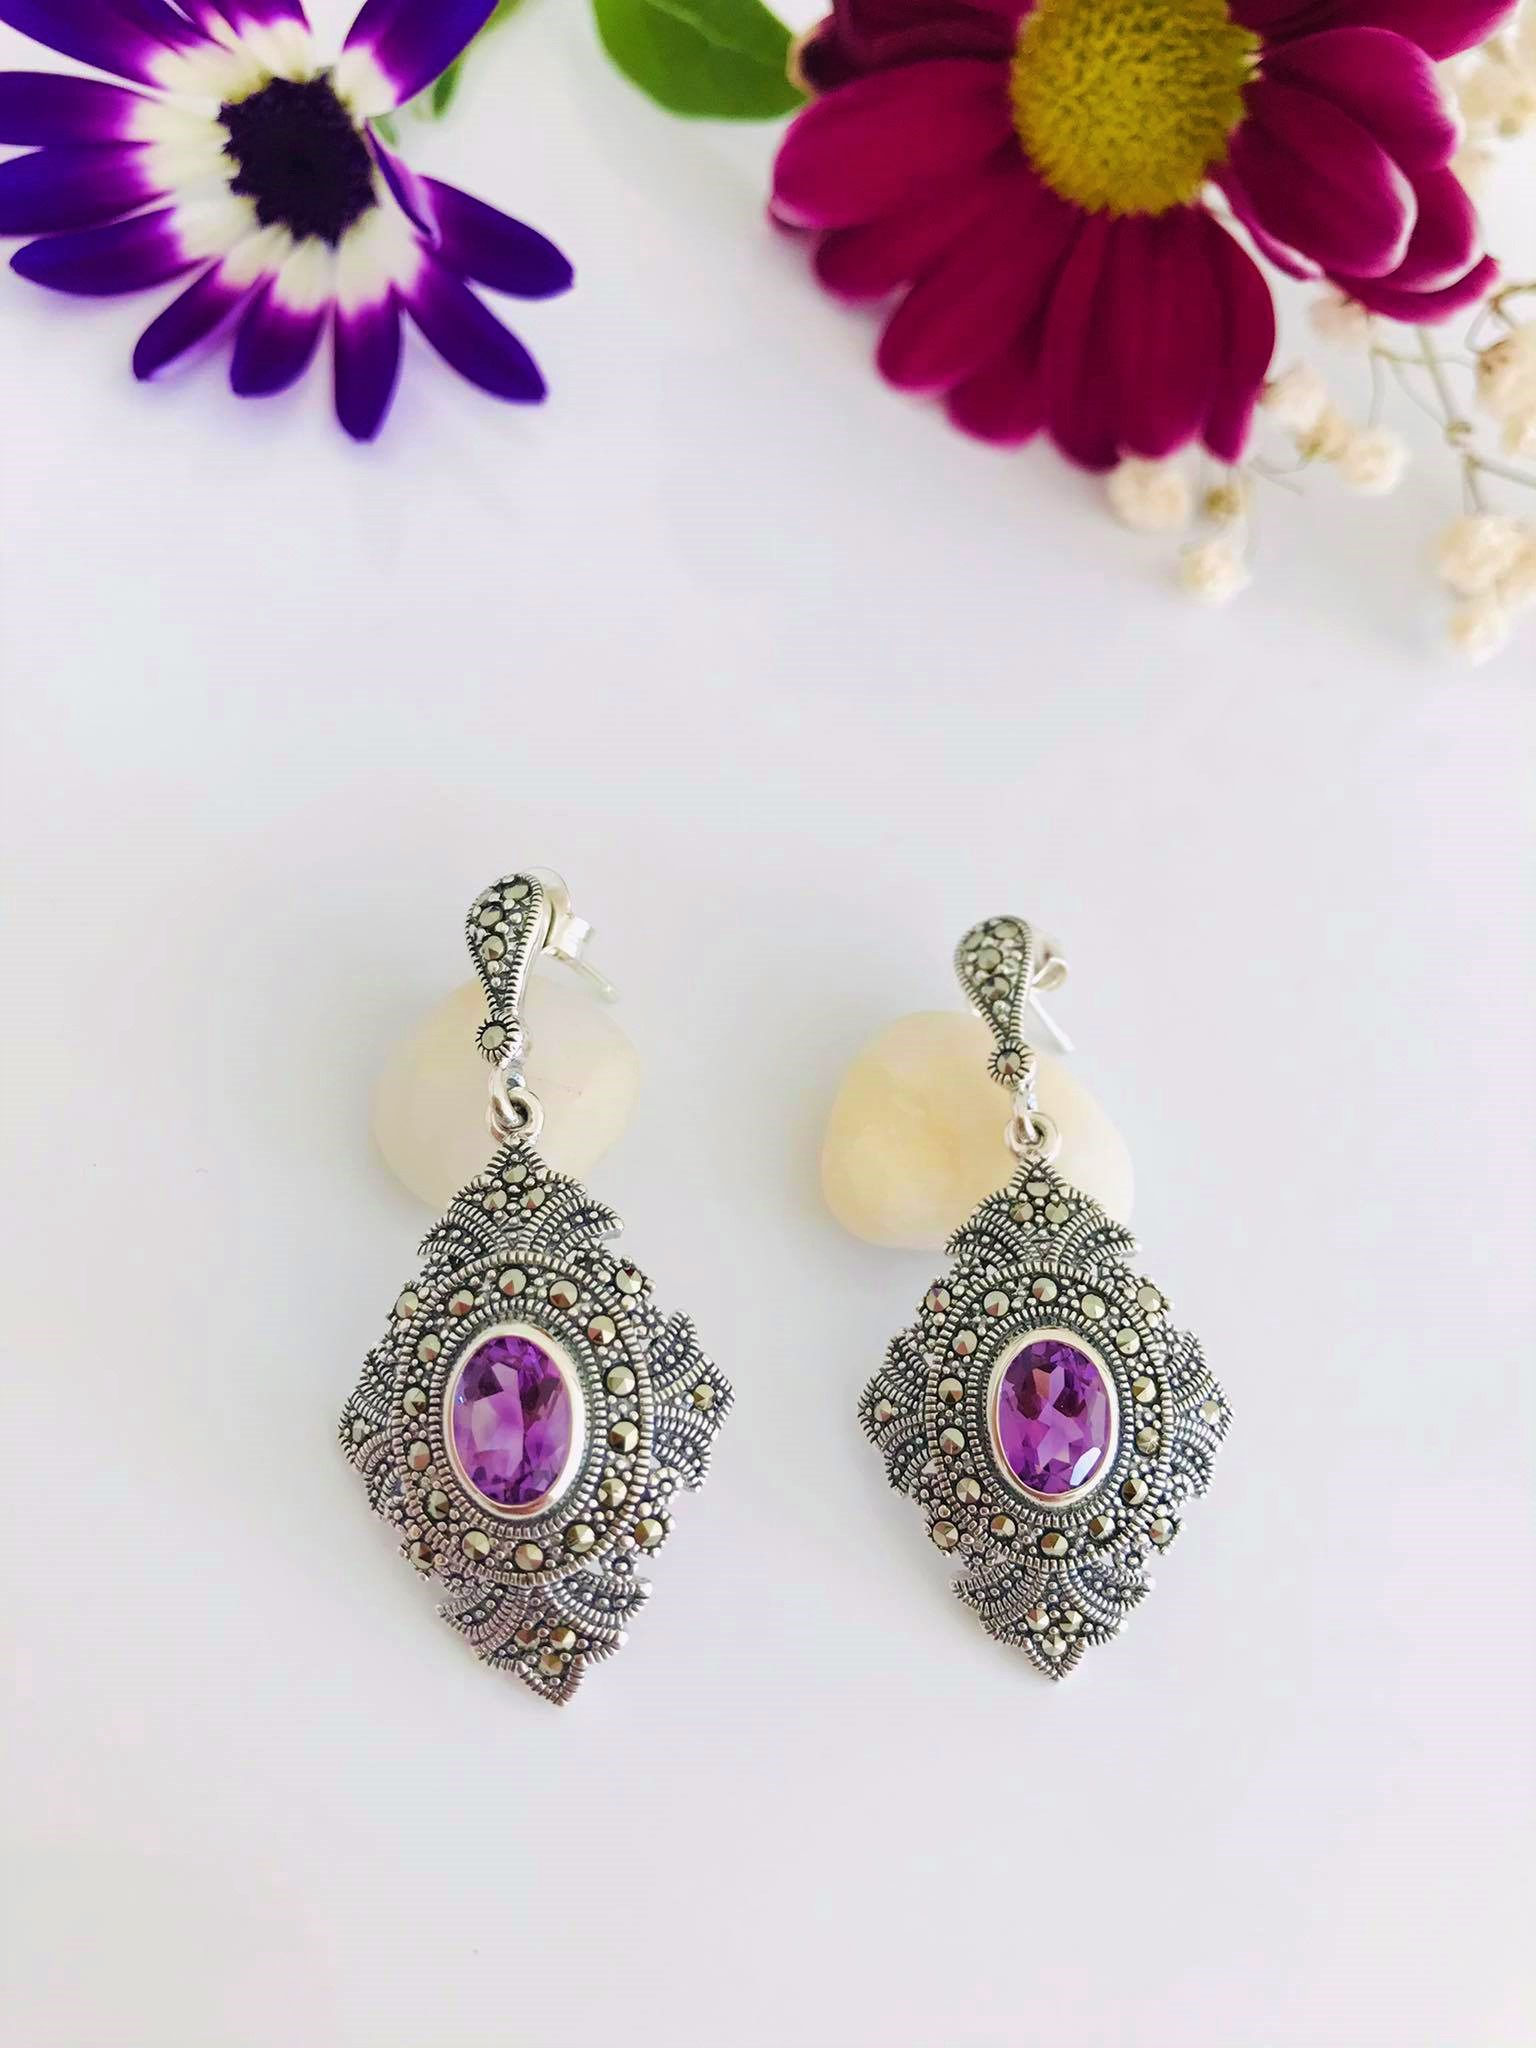 High Grade Amethyst & Marcasite Silver Earrings Image